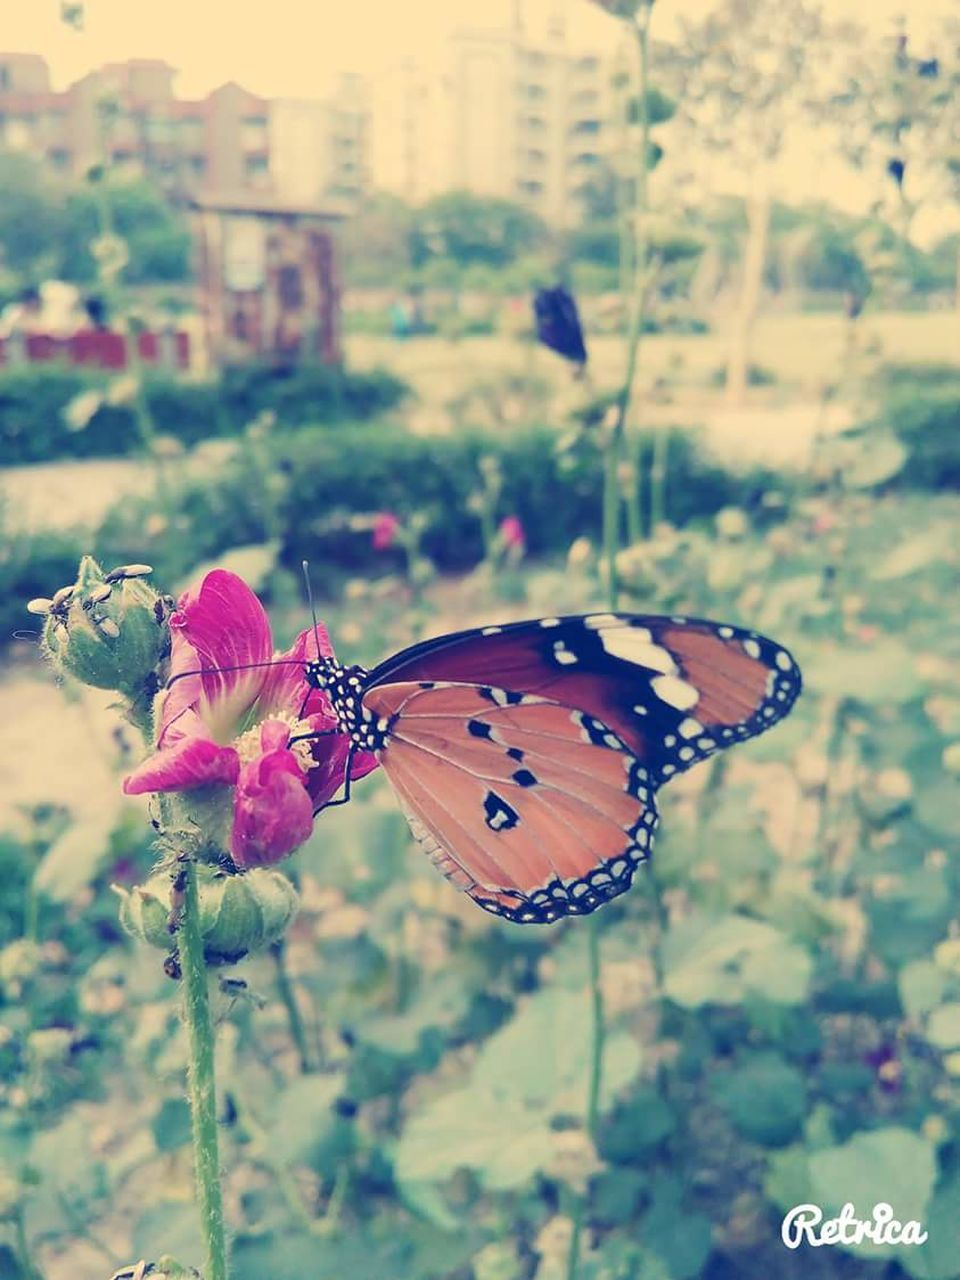 butterfly - insect, insect, focus on foreground, plant, nature, fragility, flower, butterfly, animals in the wild, animal themes, growth, beauty in nature, one animal, outdoors, close-up, no people, day, freshness, flower head